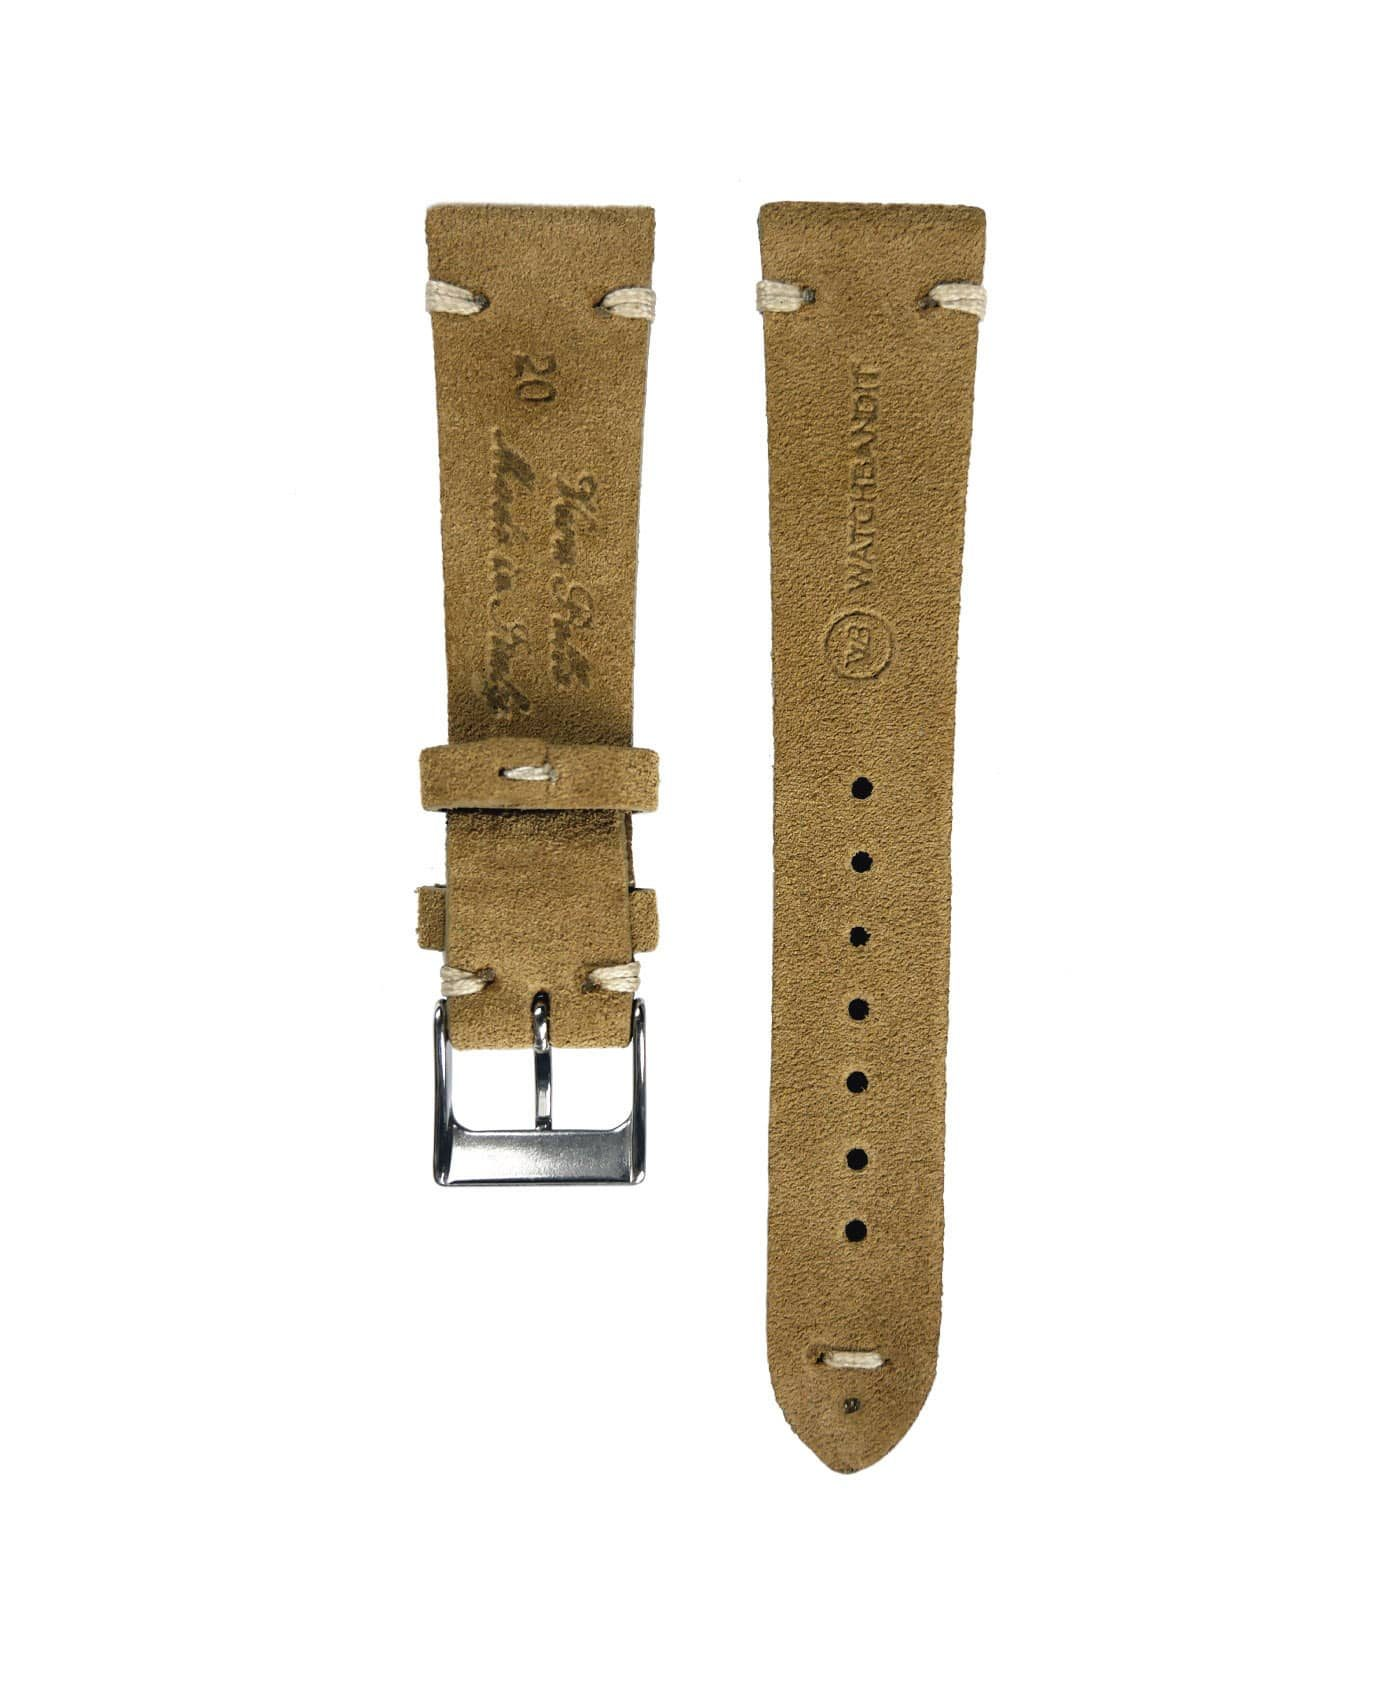 WB original premium suede watch strap beige back